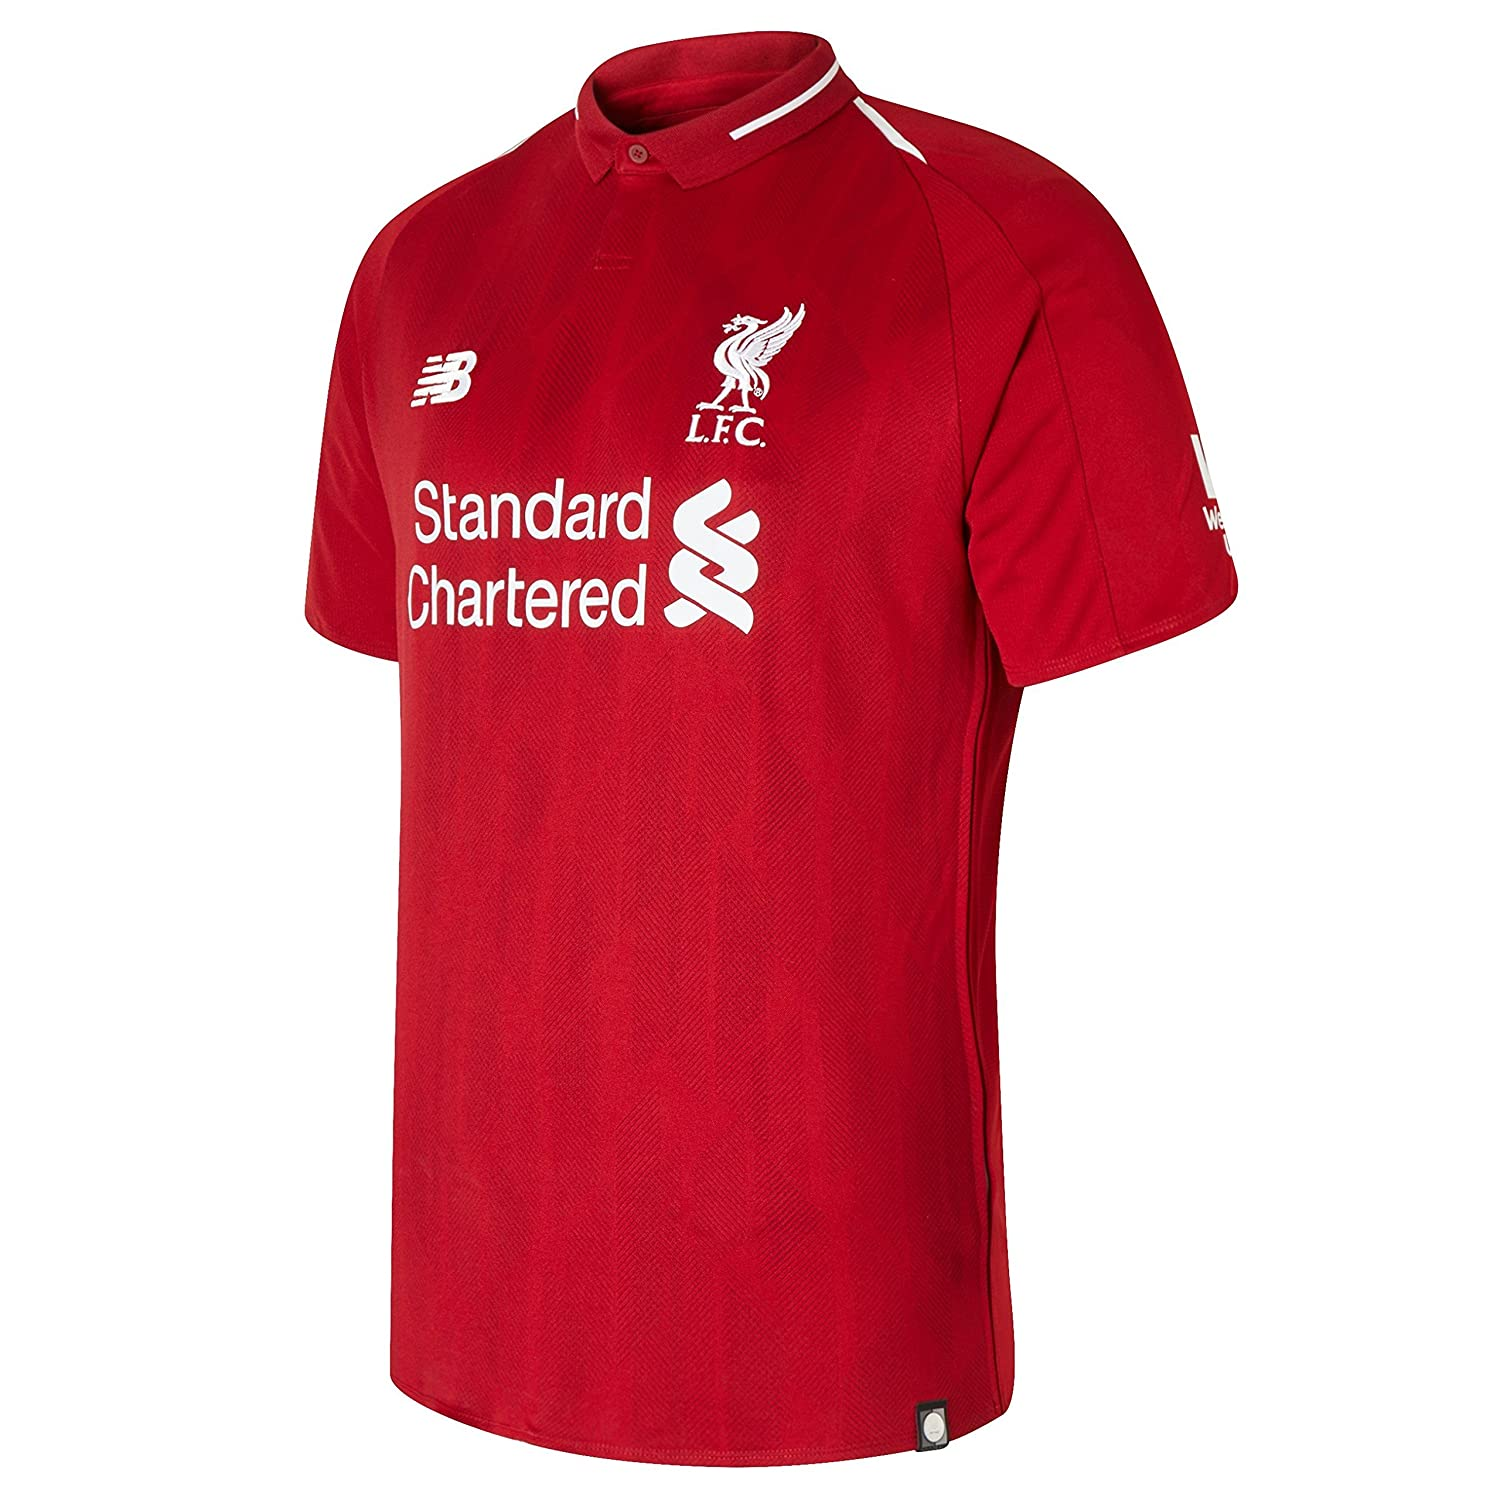 9e332ade91c Amazon.com  New Balance Men's Liverpool FC 2018-19 Home Soccer Jersey  (Pepper Red) (Small)  Clothing